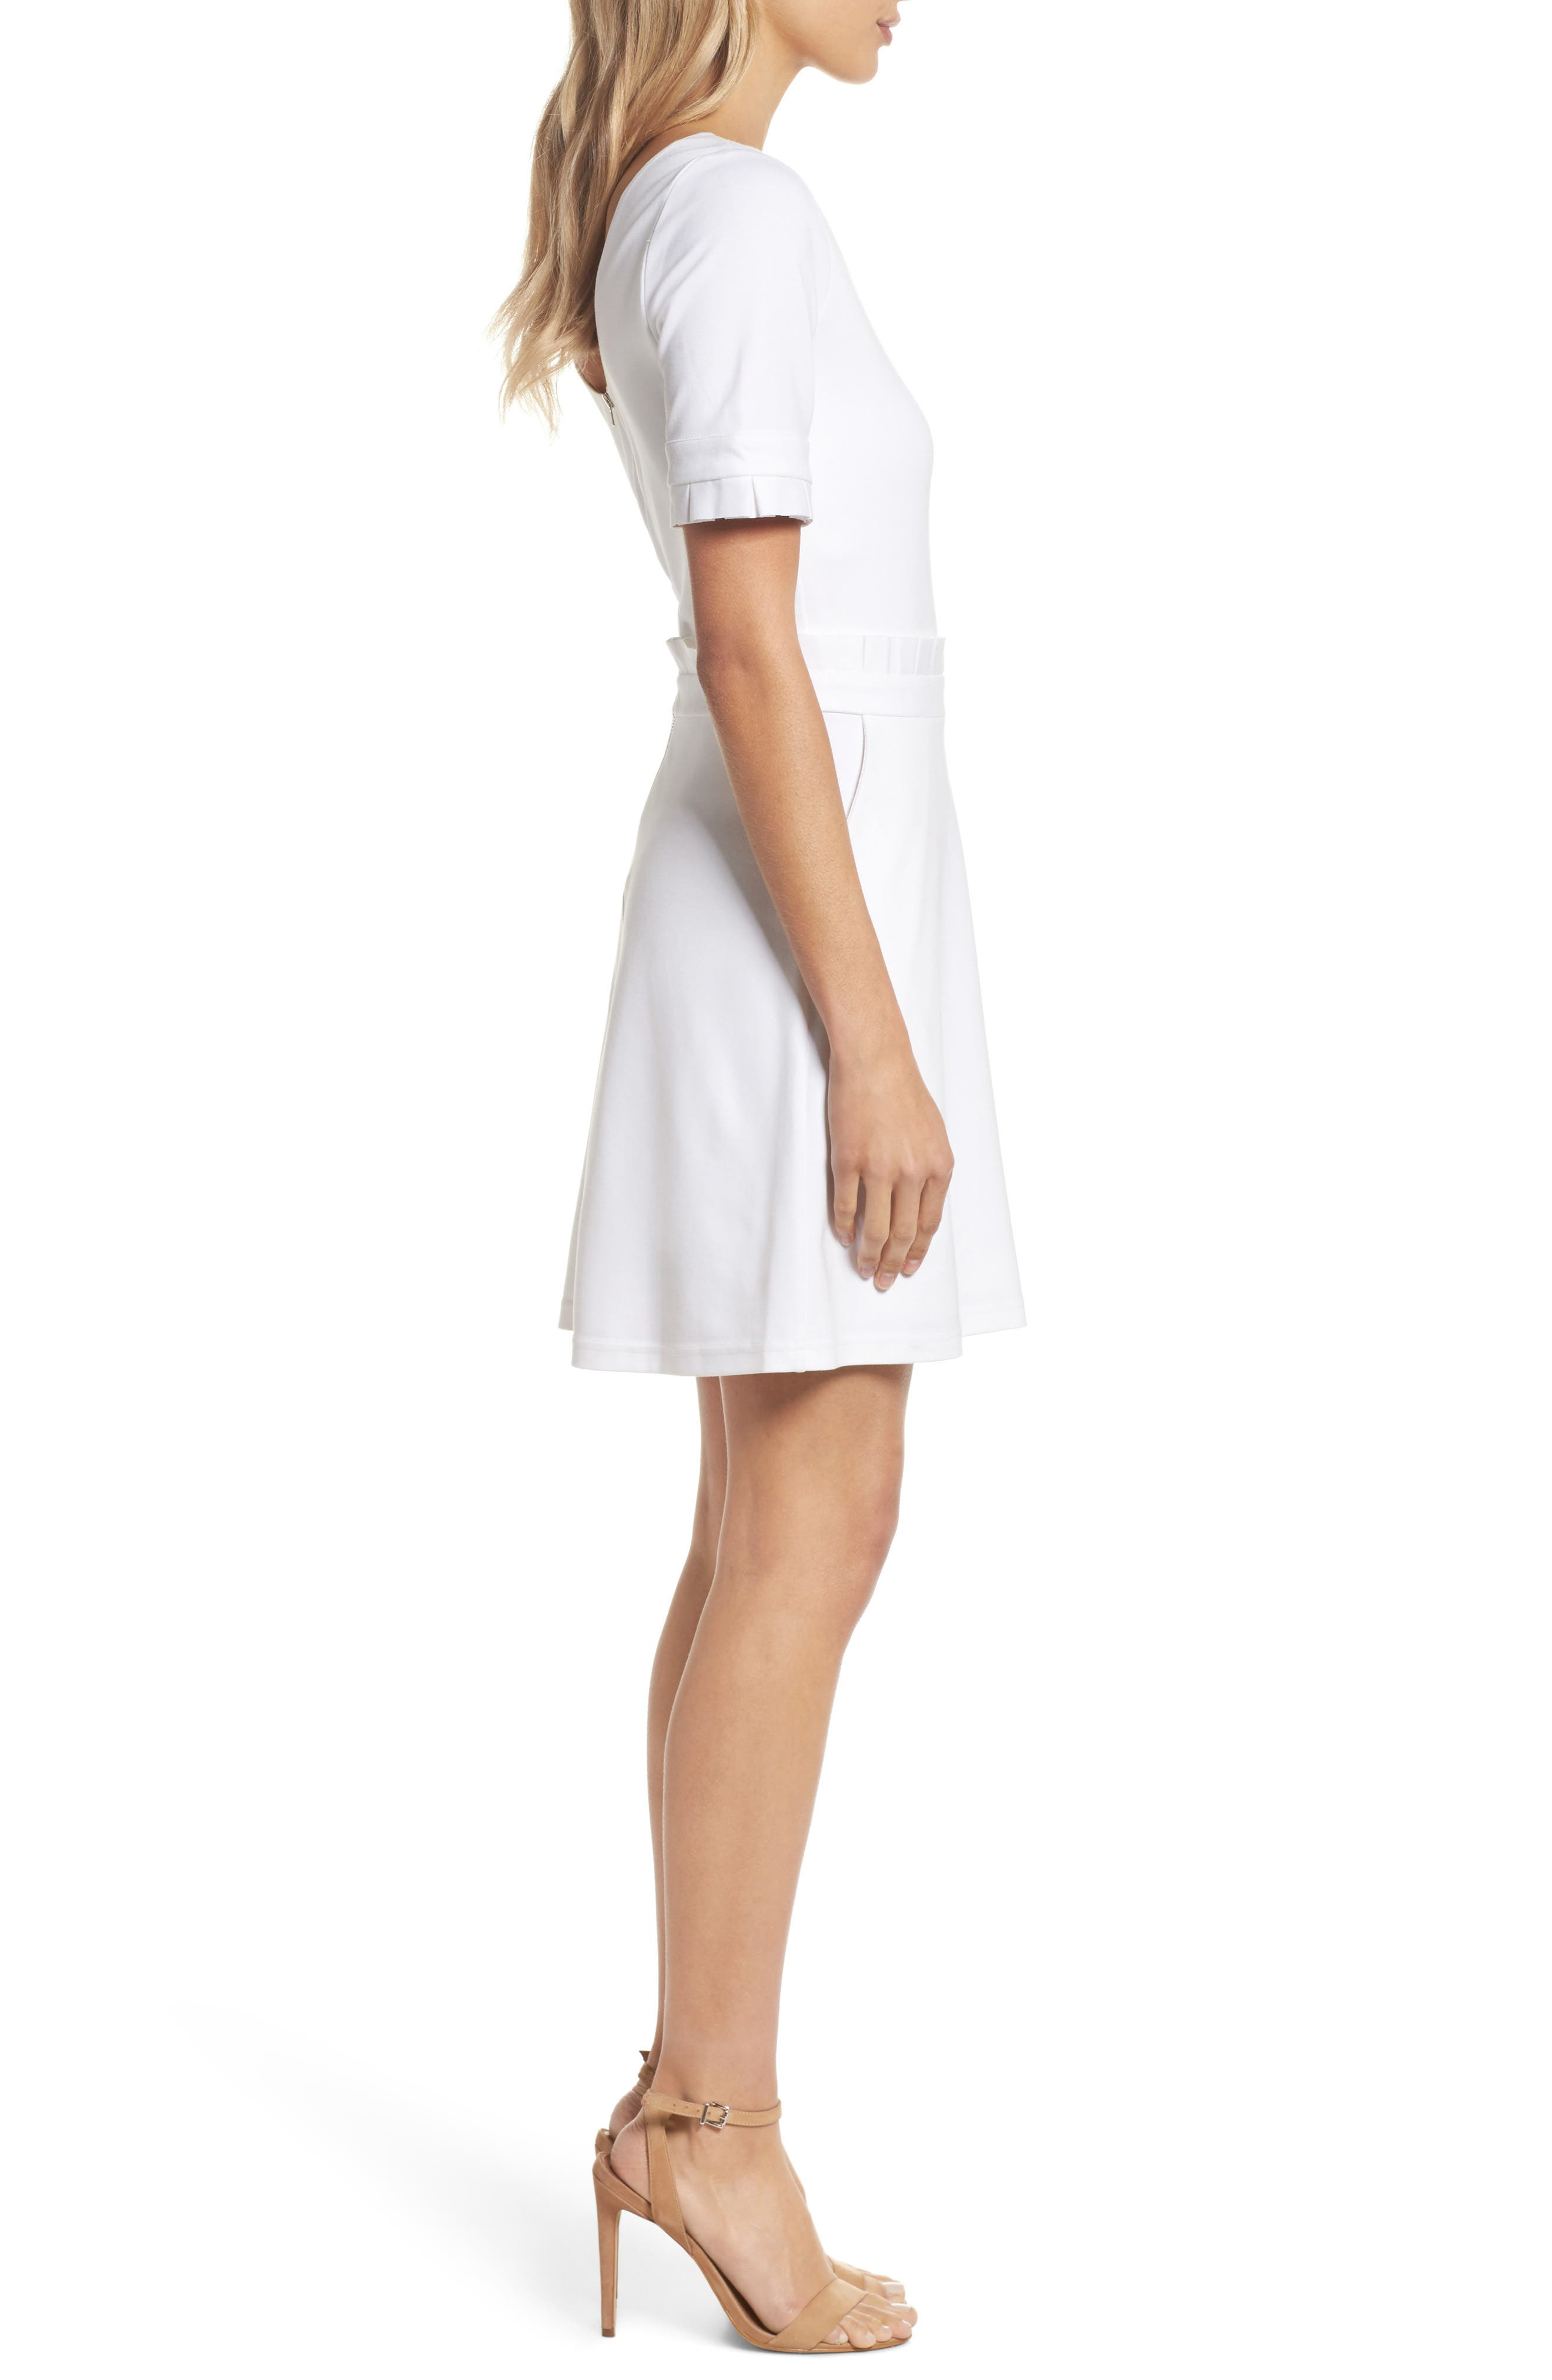 Teenage Love Minidress,                             Alternate thumbnail 3, color,                             White